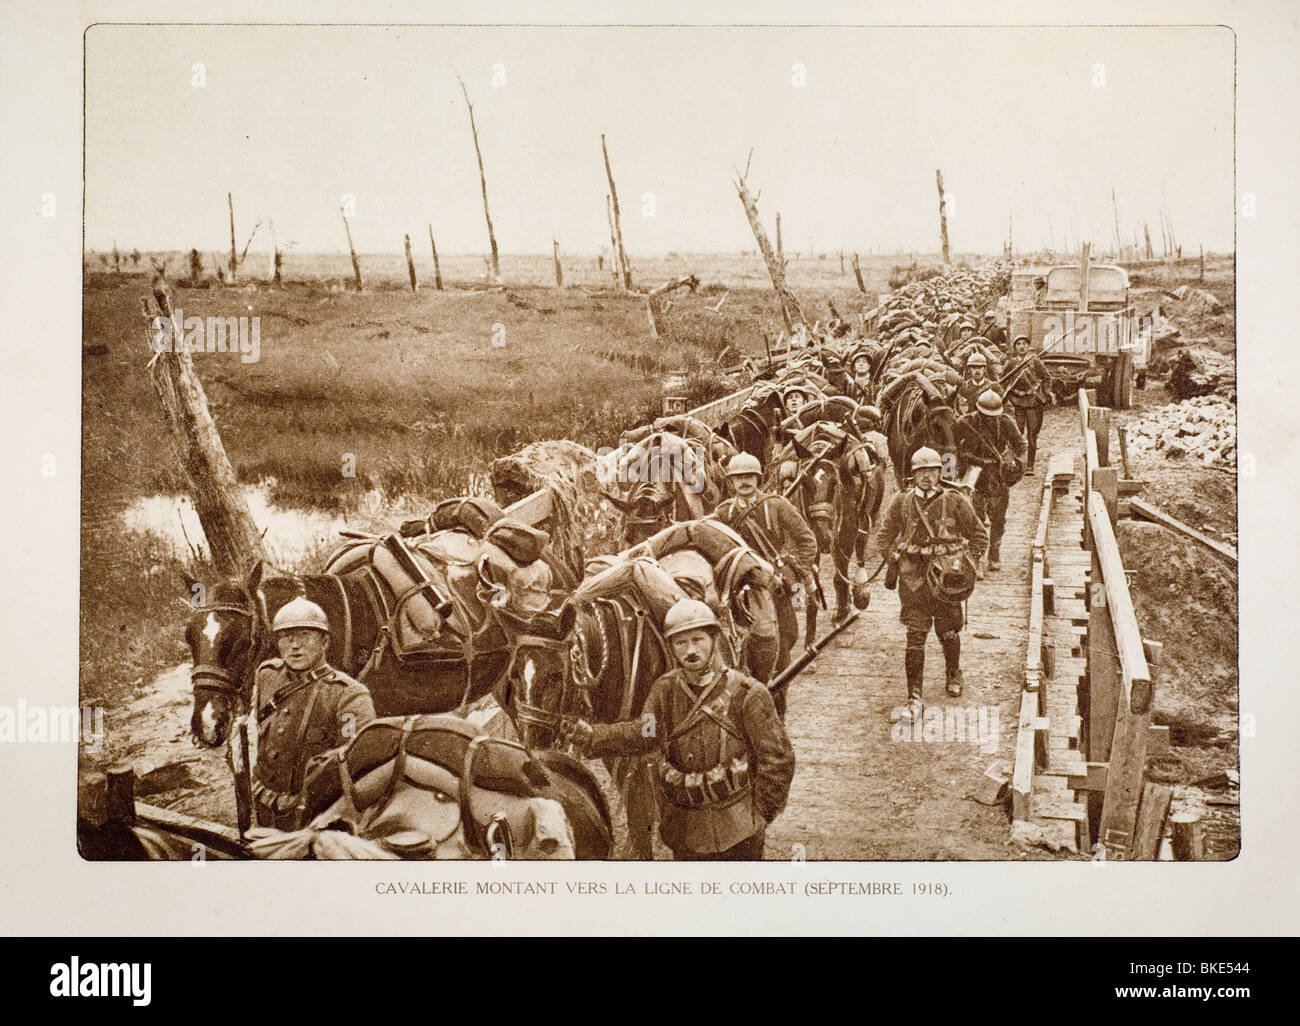 WW1 Belgian cavalry heading for battlefield through bombarded terrain in West Flanders during First World War One, - Stock Image